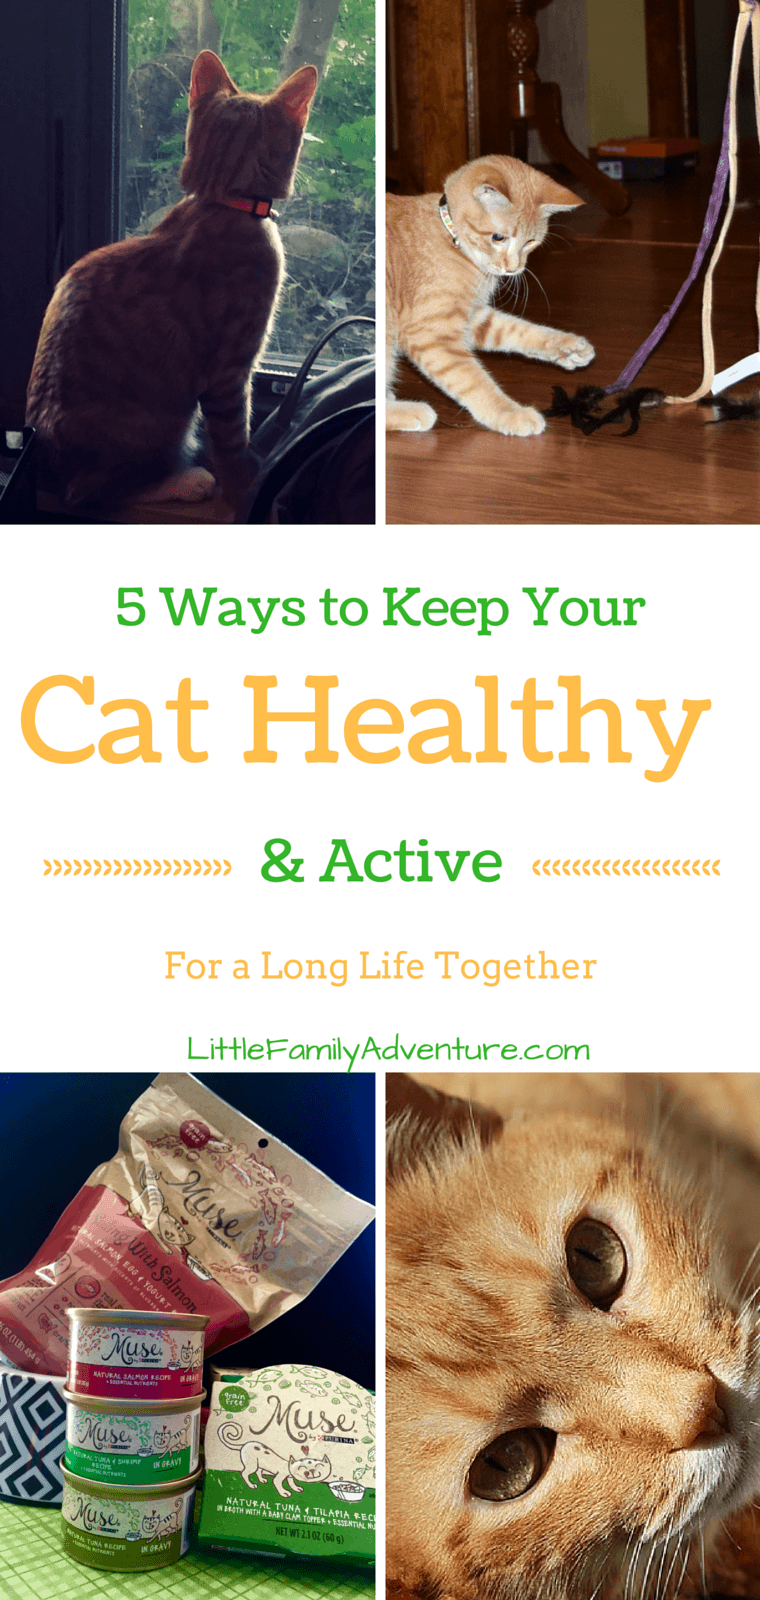 5 Ways to Keep Your Cat Healthy and Active - It starts with food that provide everything your cat needs to be healthy. #mycatmymuse #ad